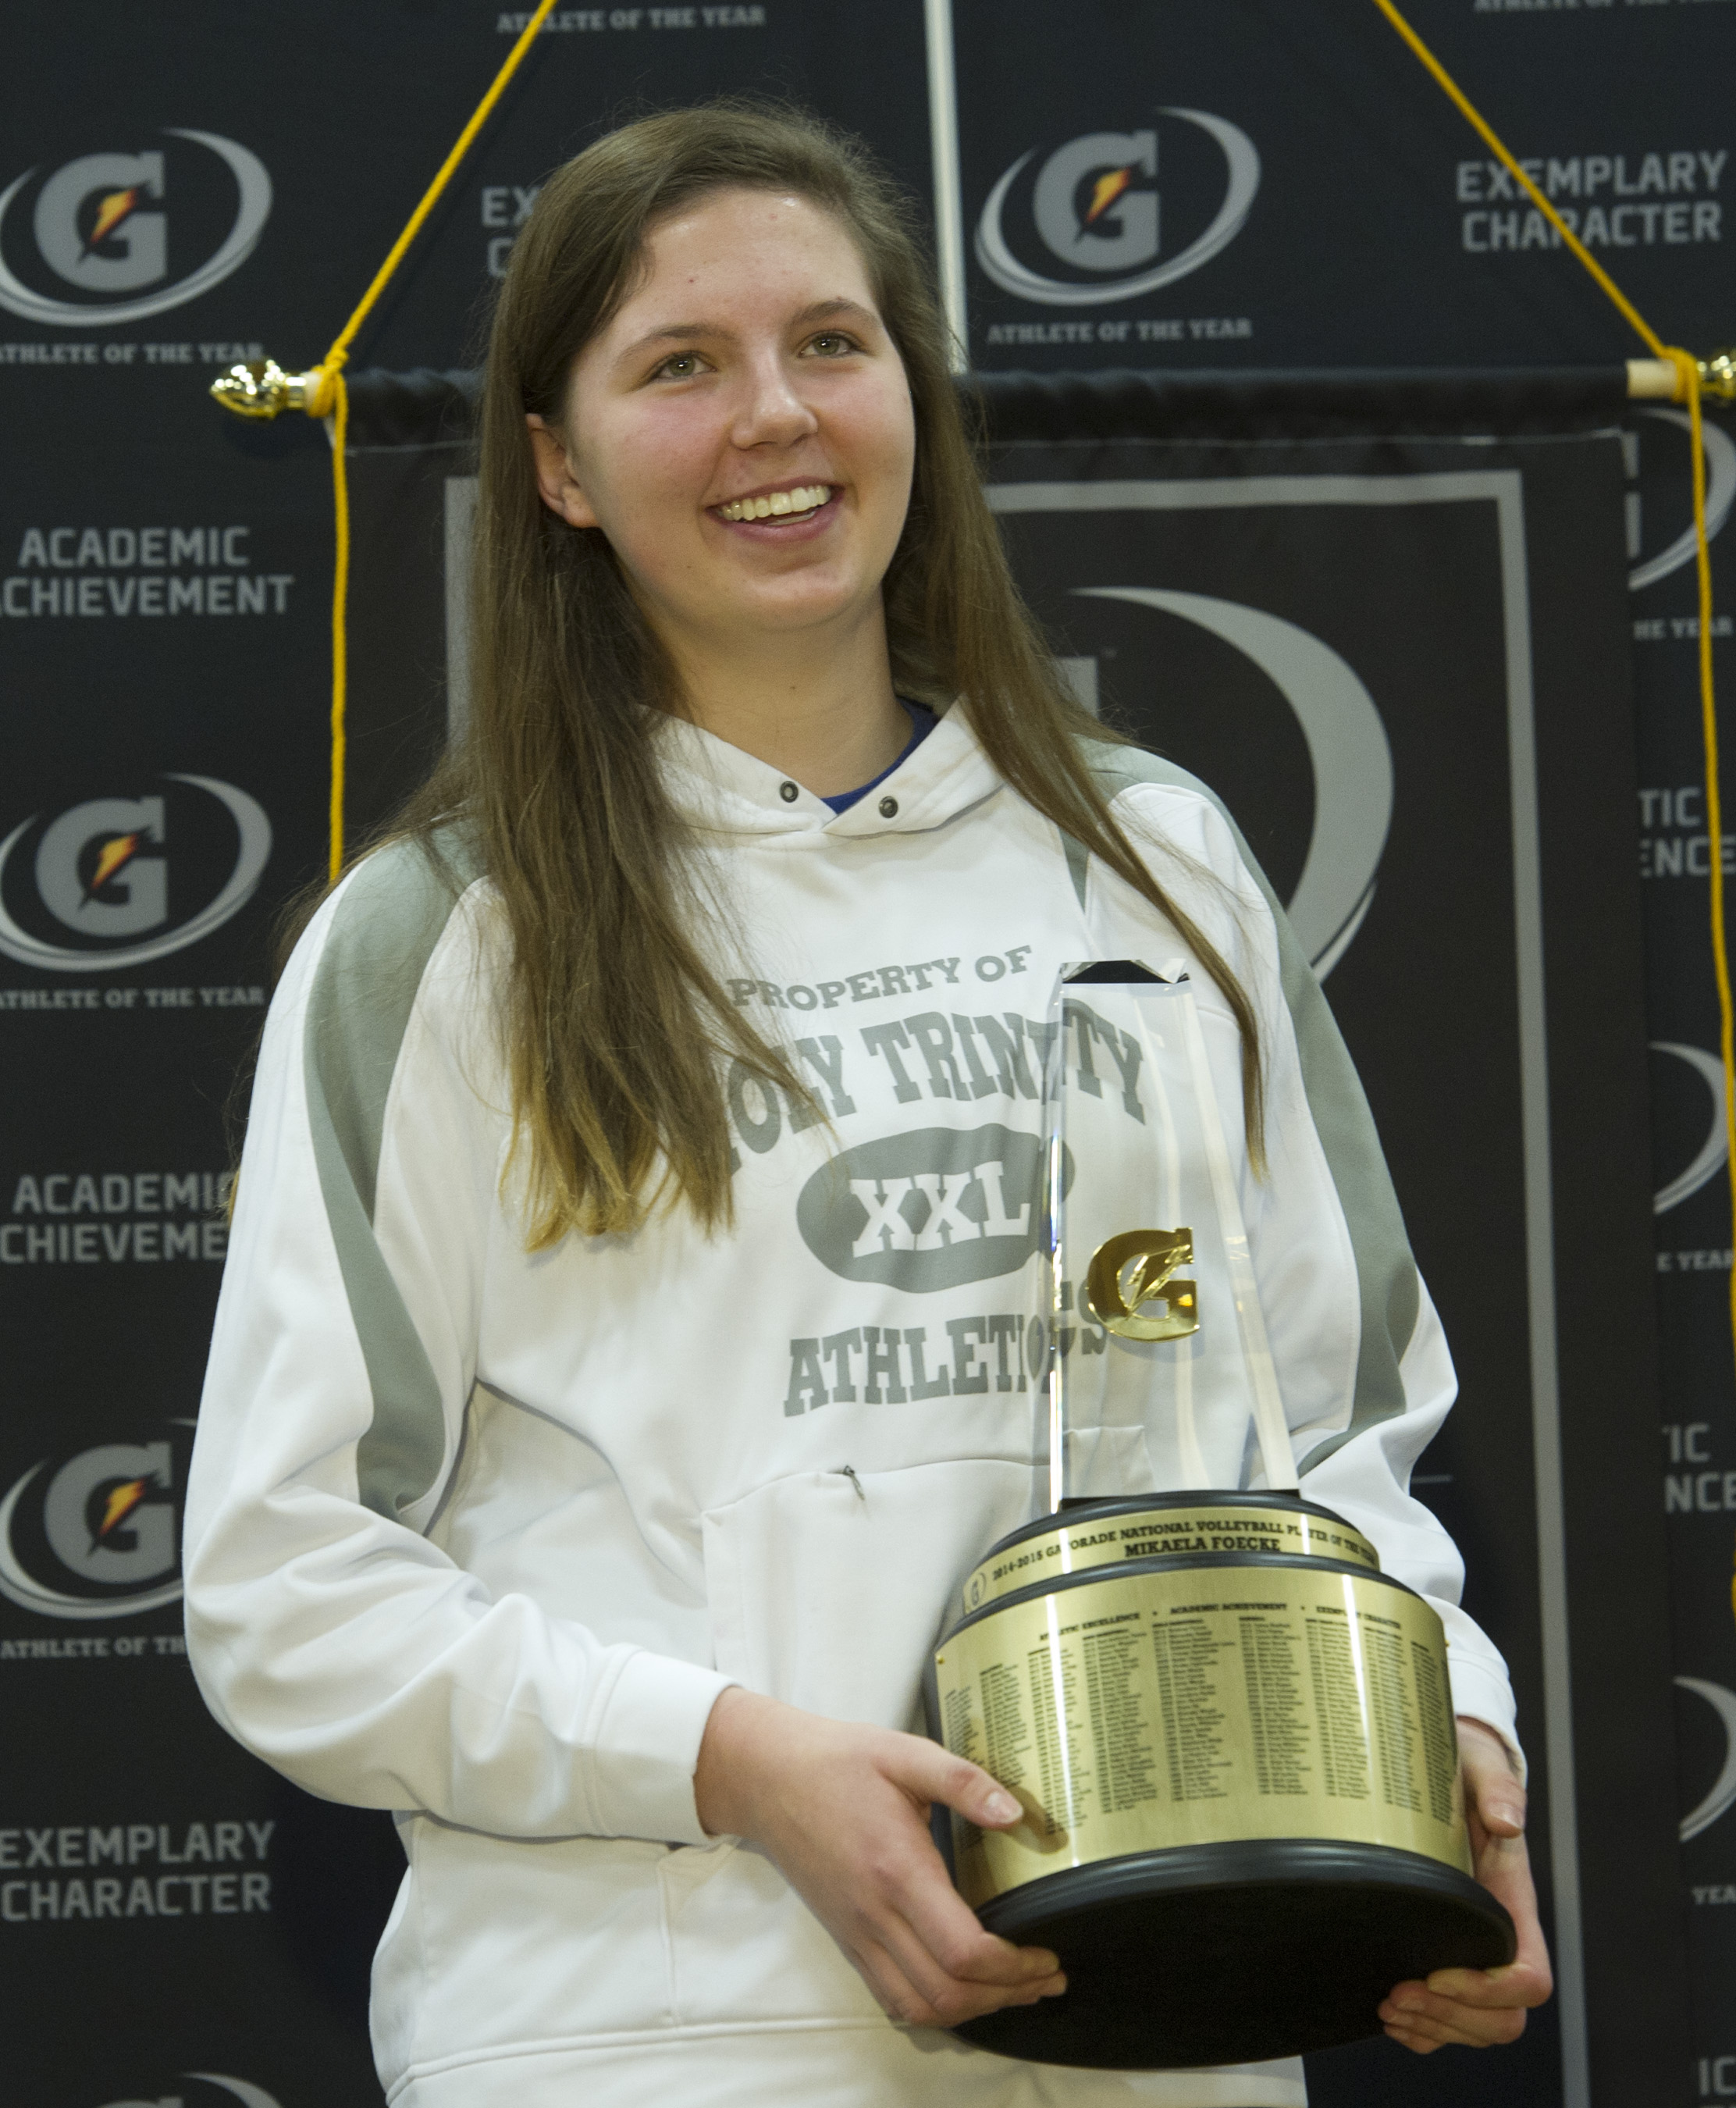 Mikaela Foecke holds the trophy during a press conference. / Susan Goldman, Gatorade